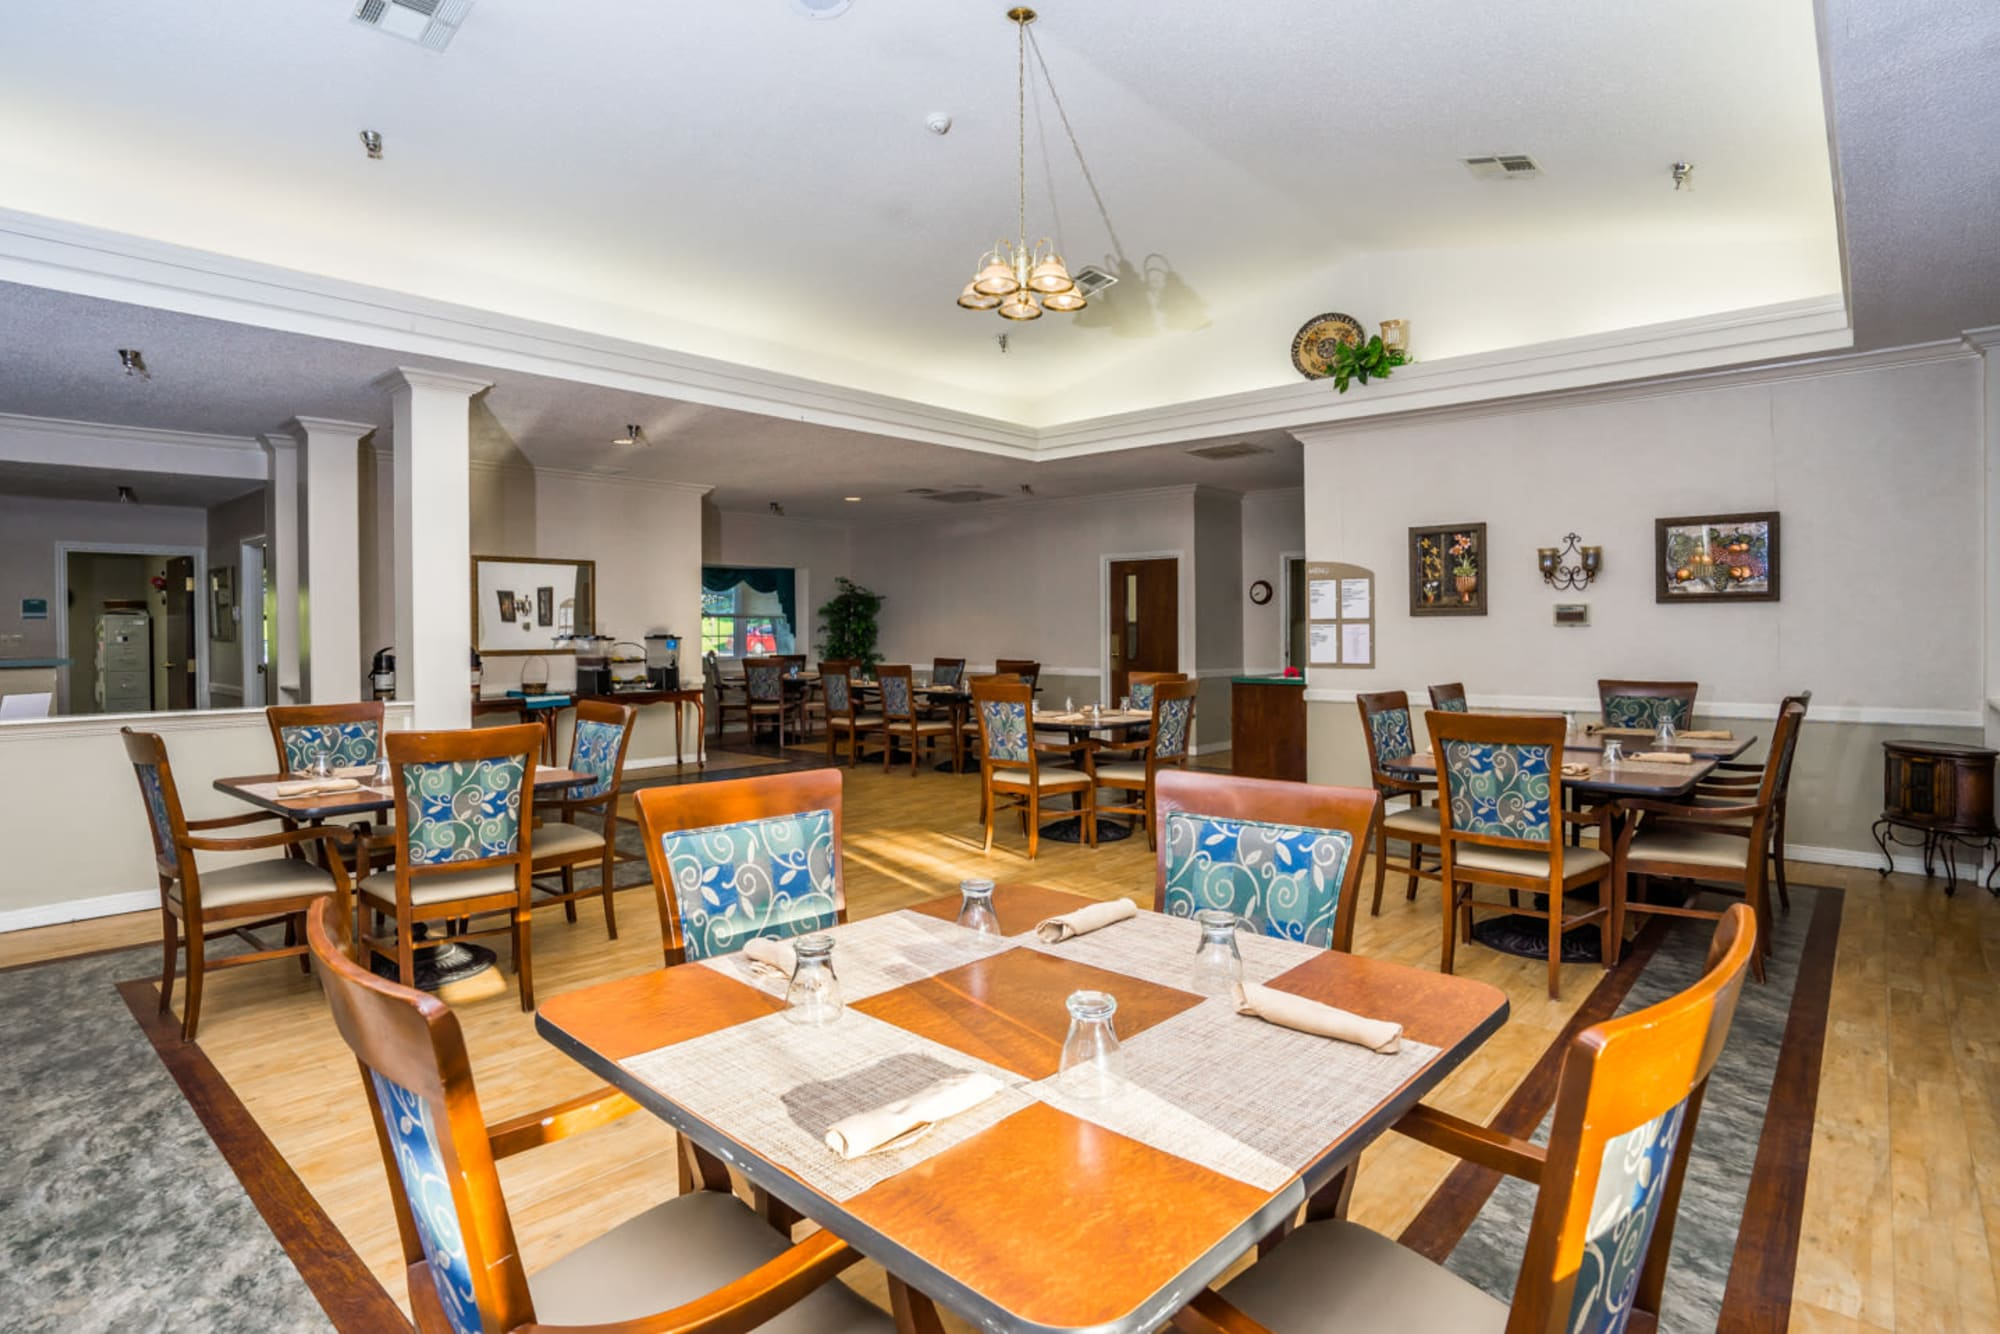 Elegant dining room with wood accents at Saunders House in Wahoo, Nebraska.